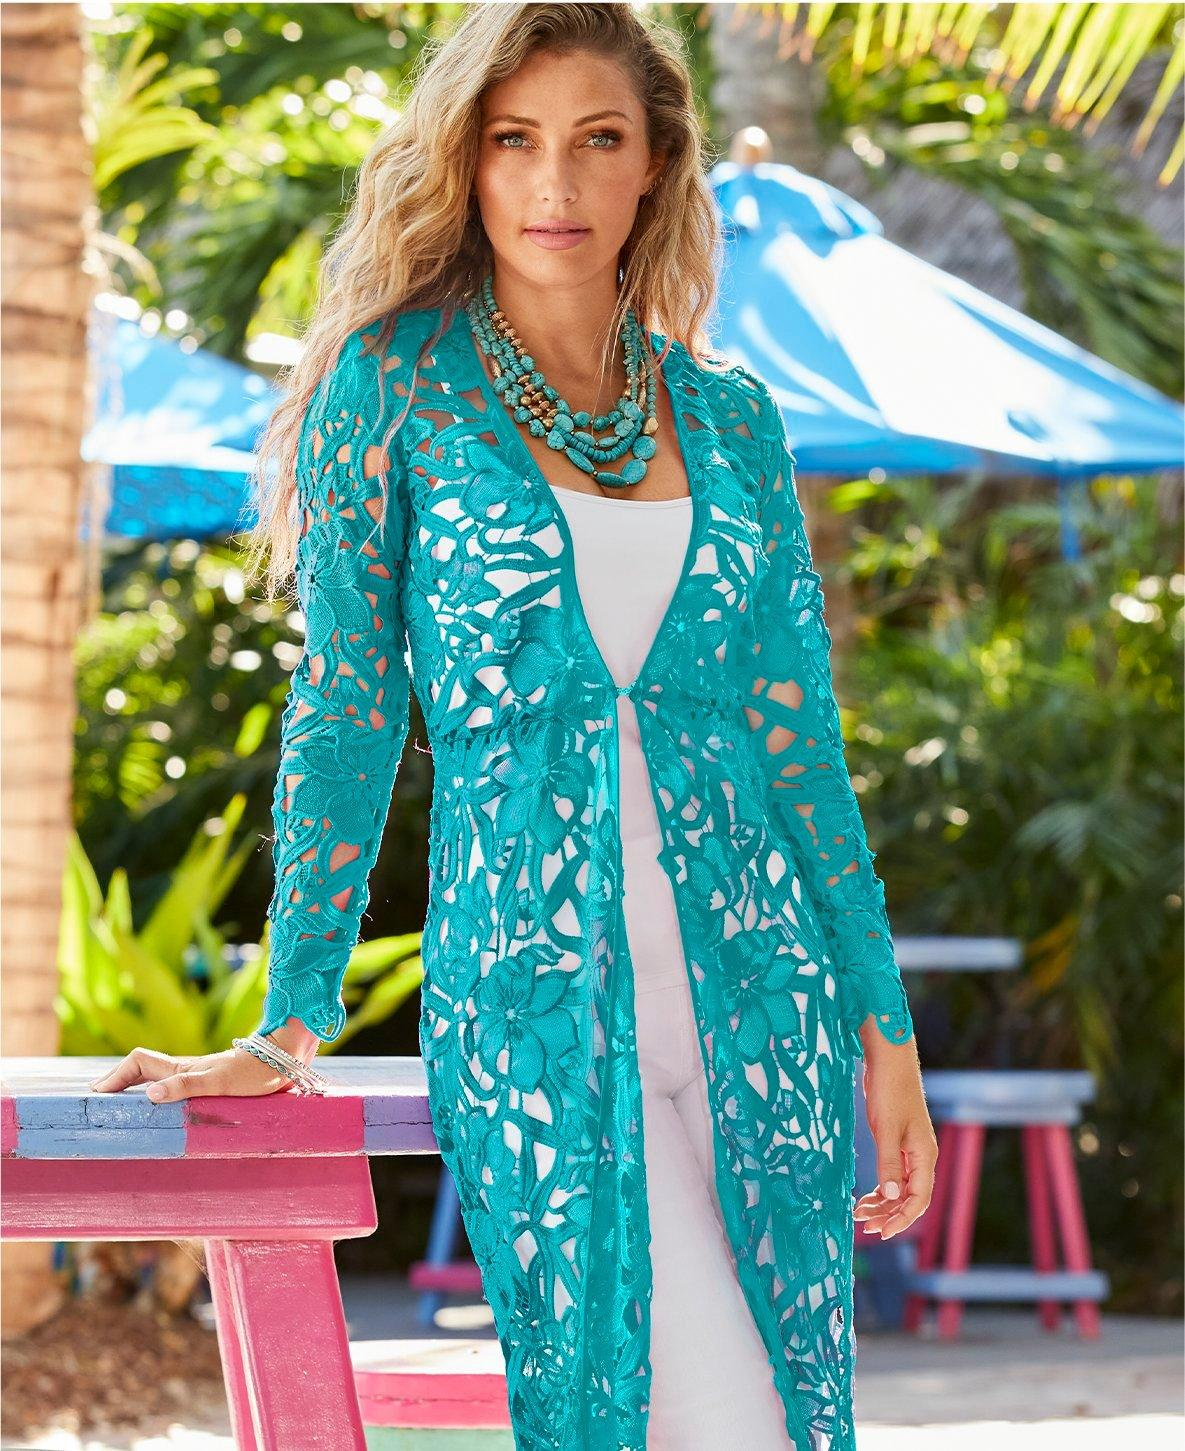 model wearing a blue lace duster, white tank top, white jeans, and a layered turquoise stone necklace.